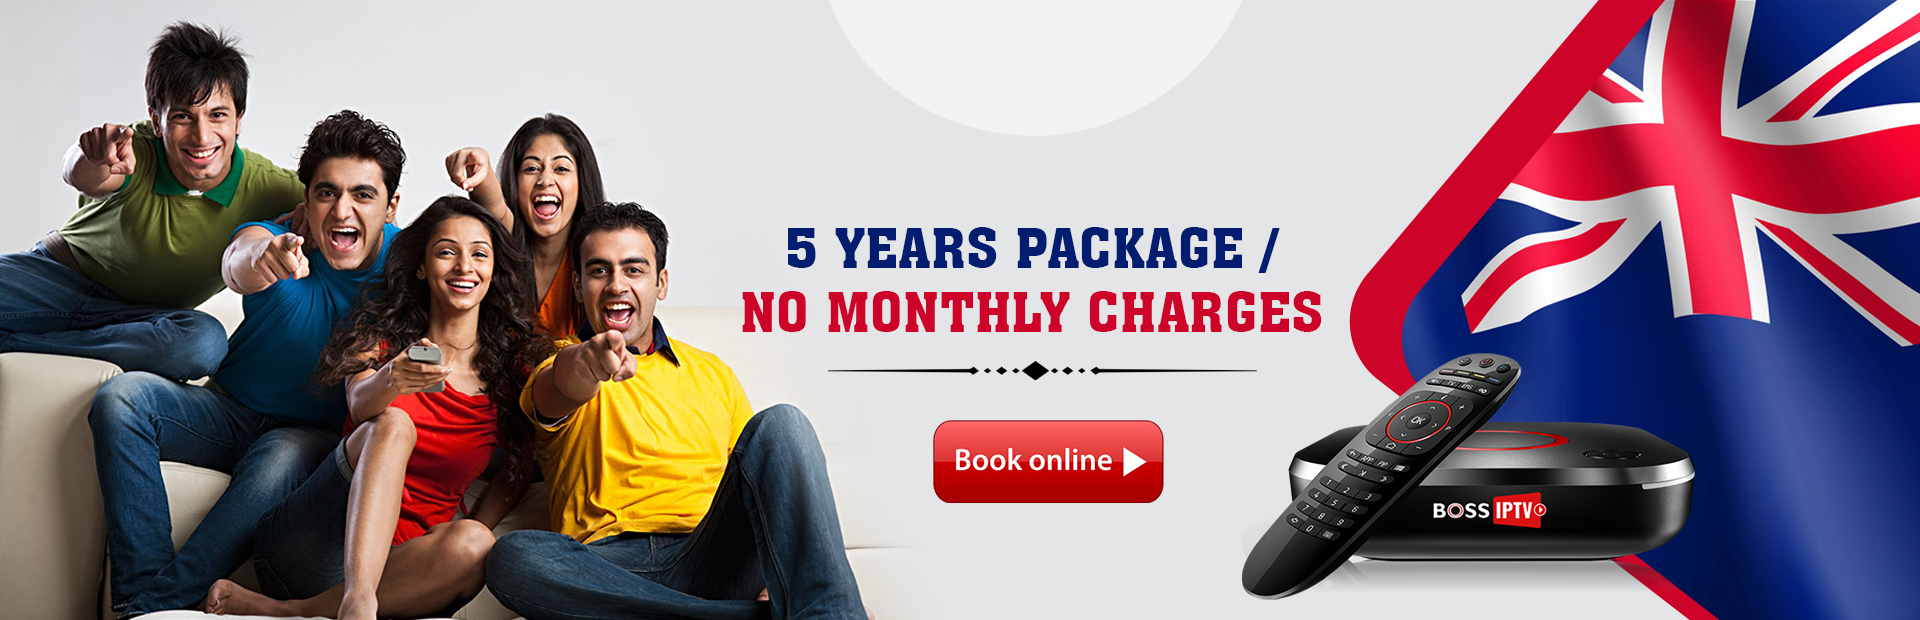 5 Years Package / No Monthly Charges